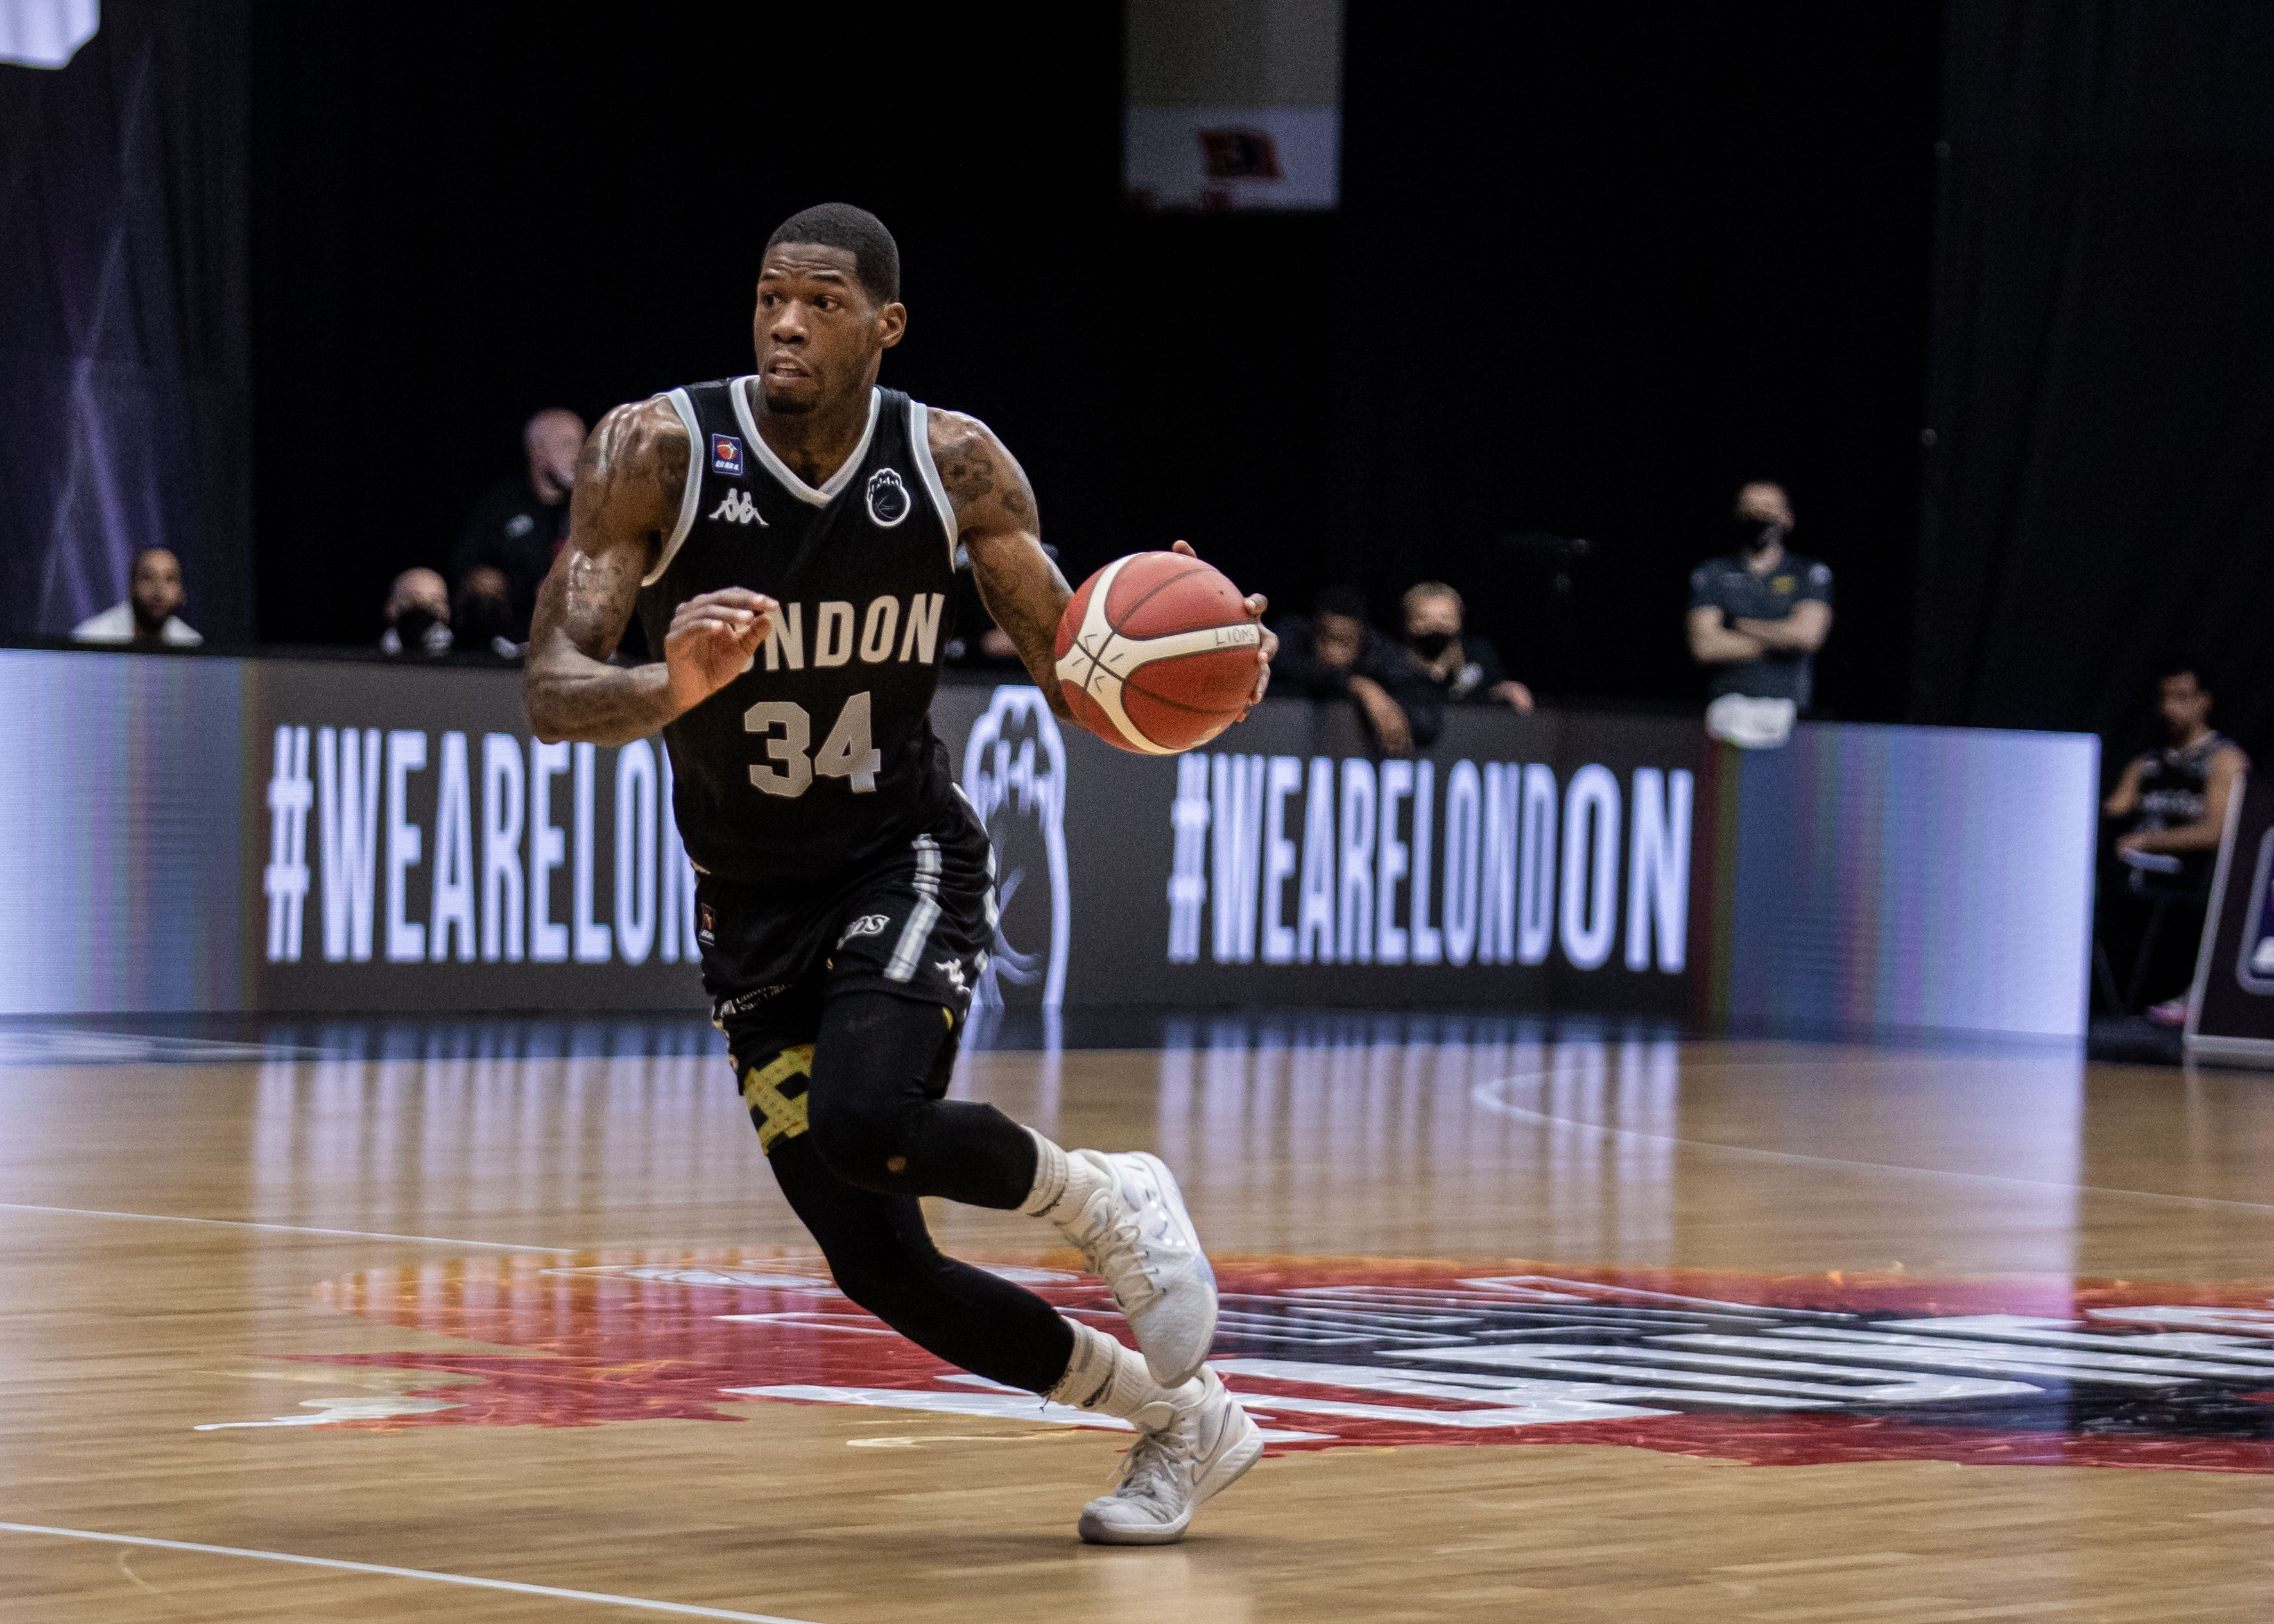 4 London Lions players named to the Team of the Year